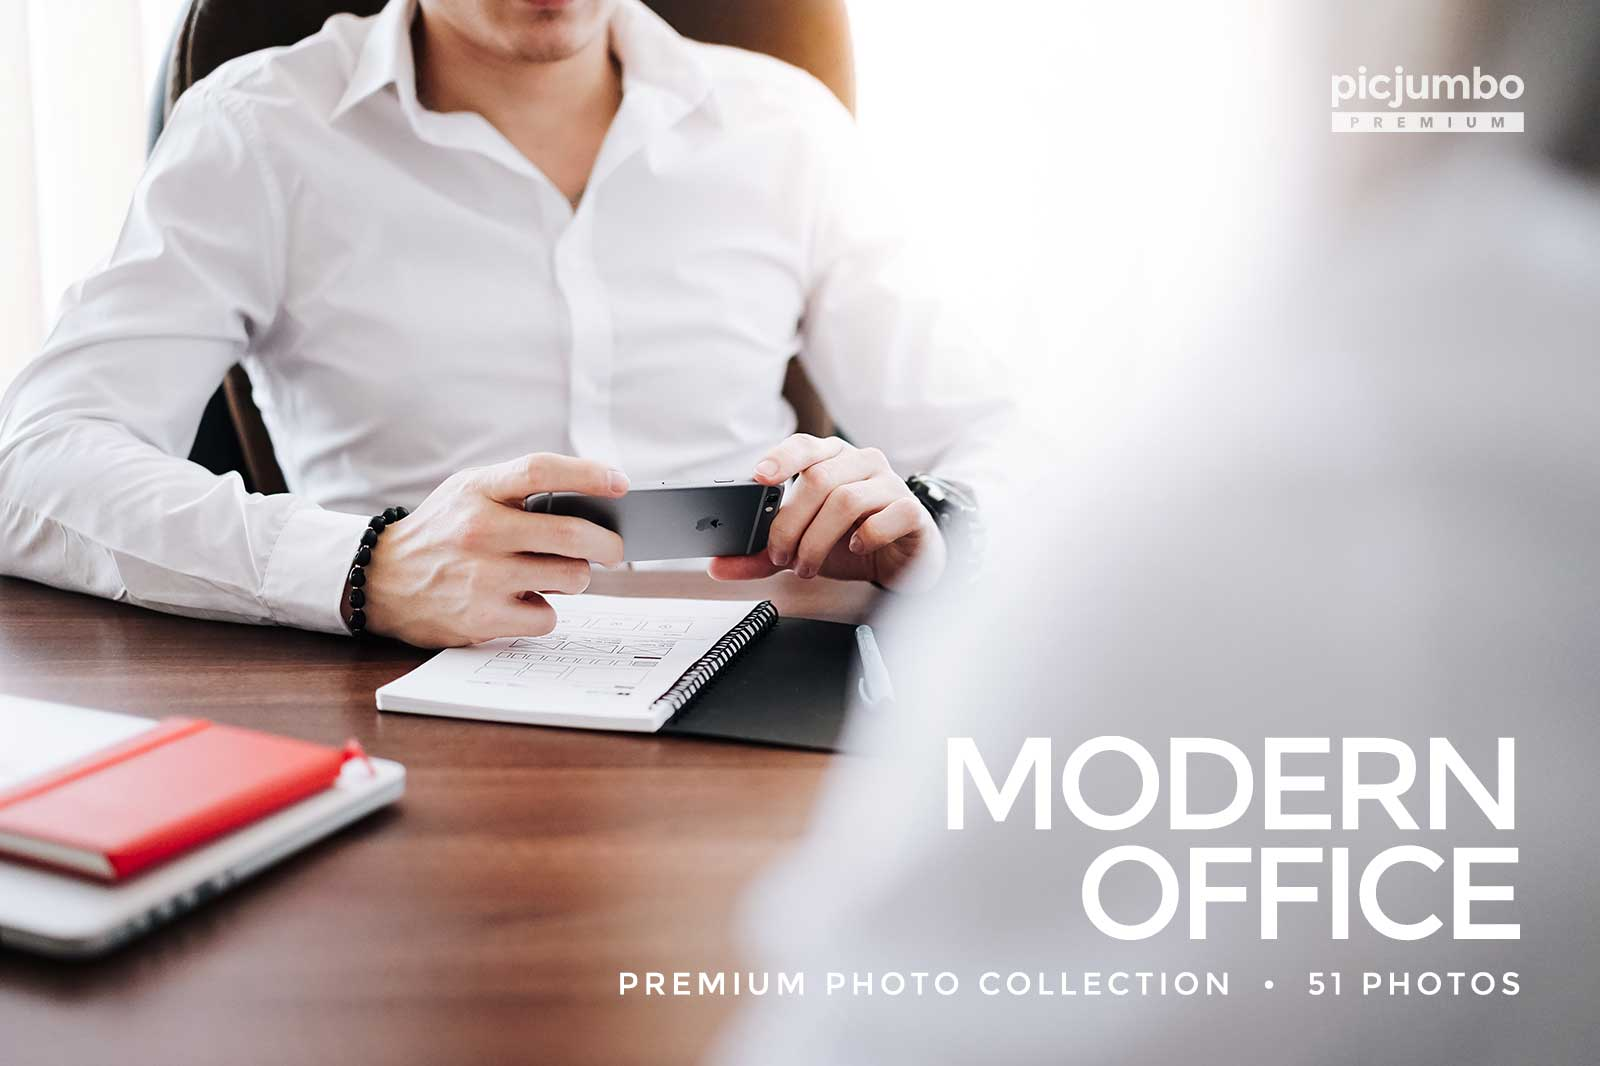 Join PREMIUM and get full collection now: Modern Office